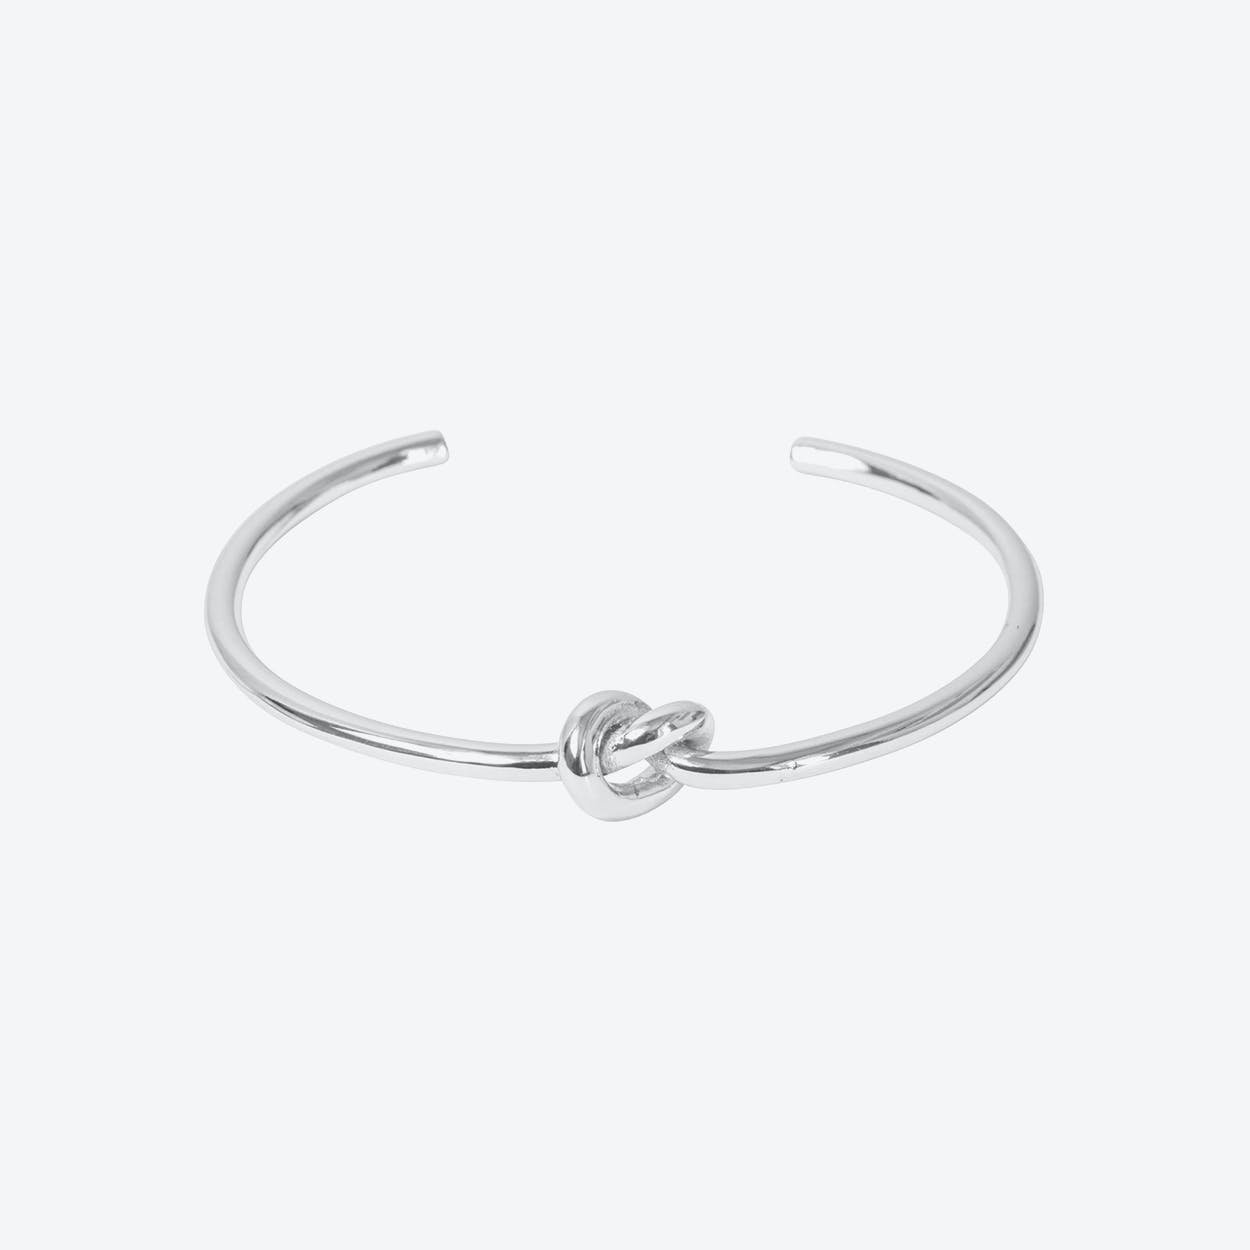 Silver Plated Single Row Knot Bangle